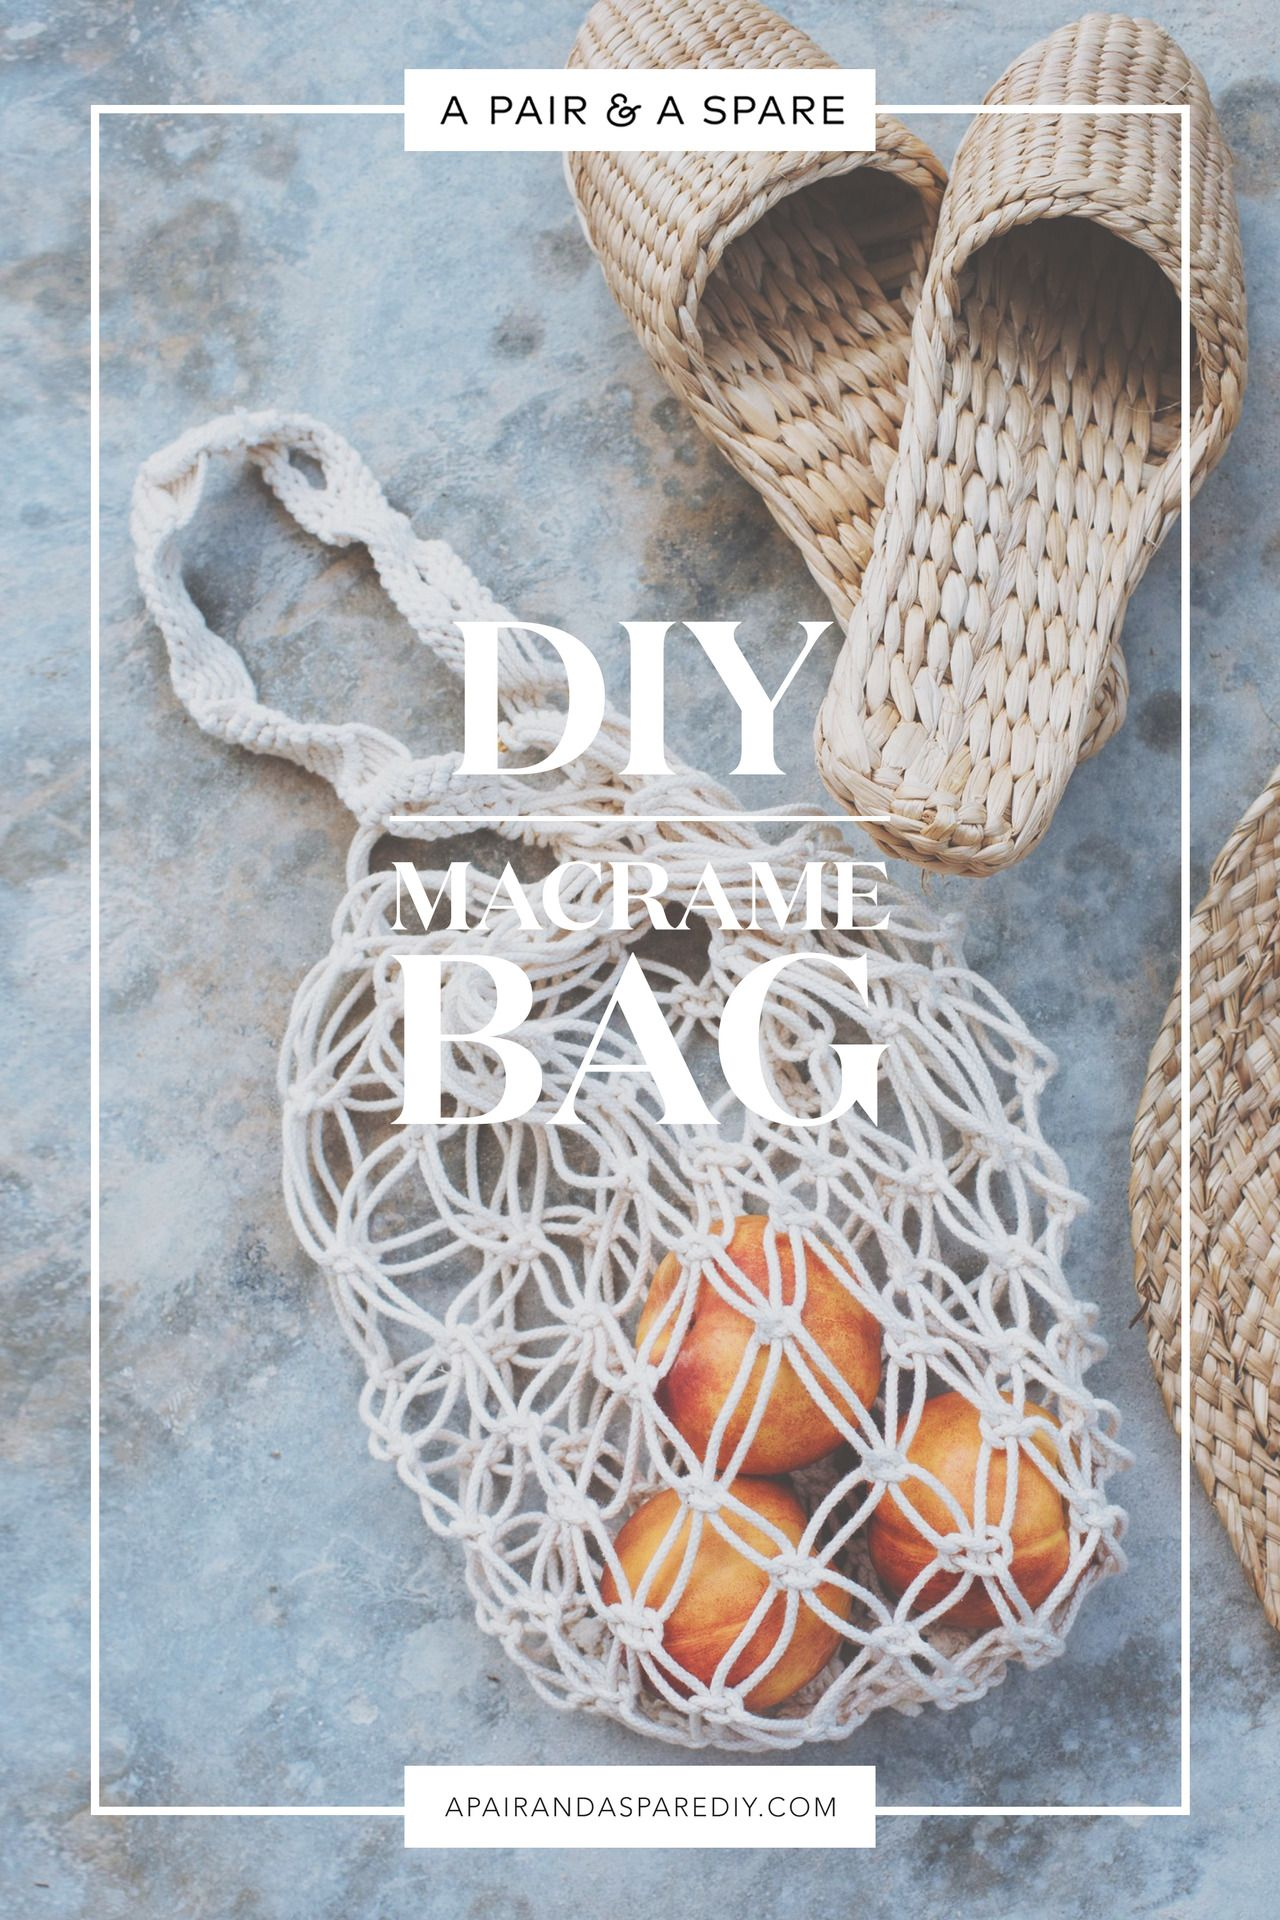 DIY Macramé Bag (Our Second Version!) | Crafty things | Pinterest ...